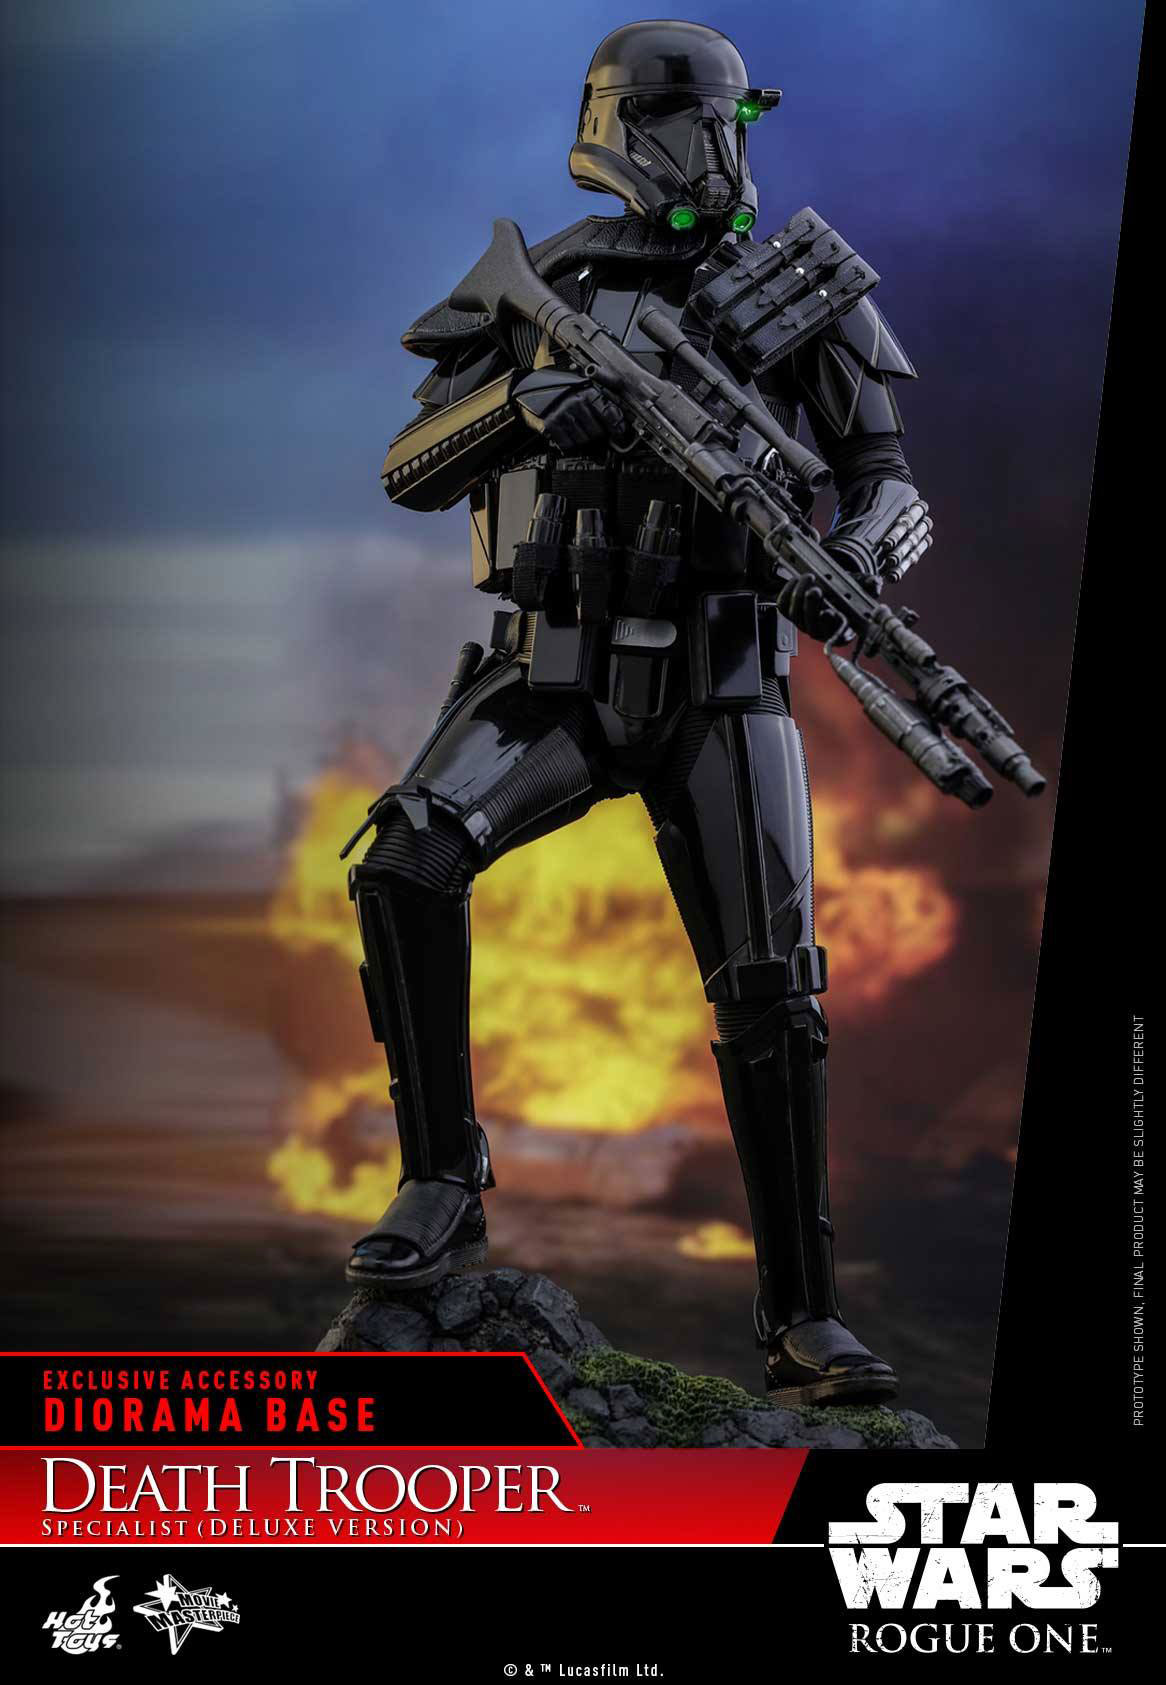 hot-toys-star-wars-rogue-one-death-trooper-figure-5